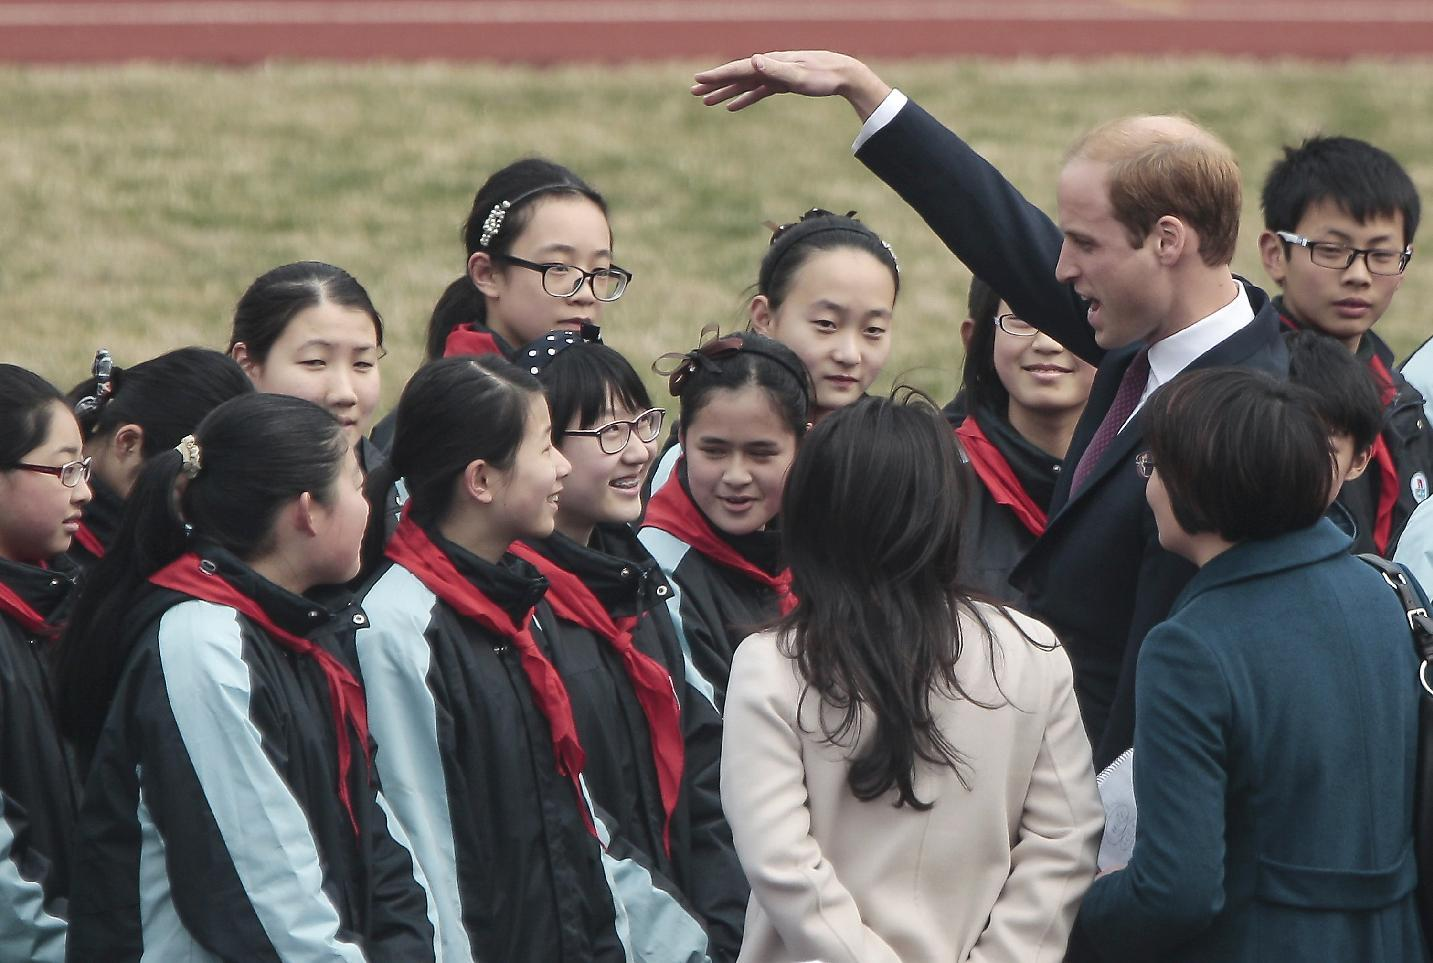 Prince William to meet elephants on final day of China tour